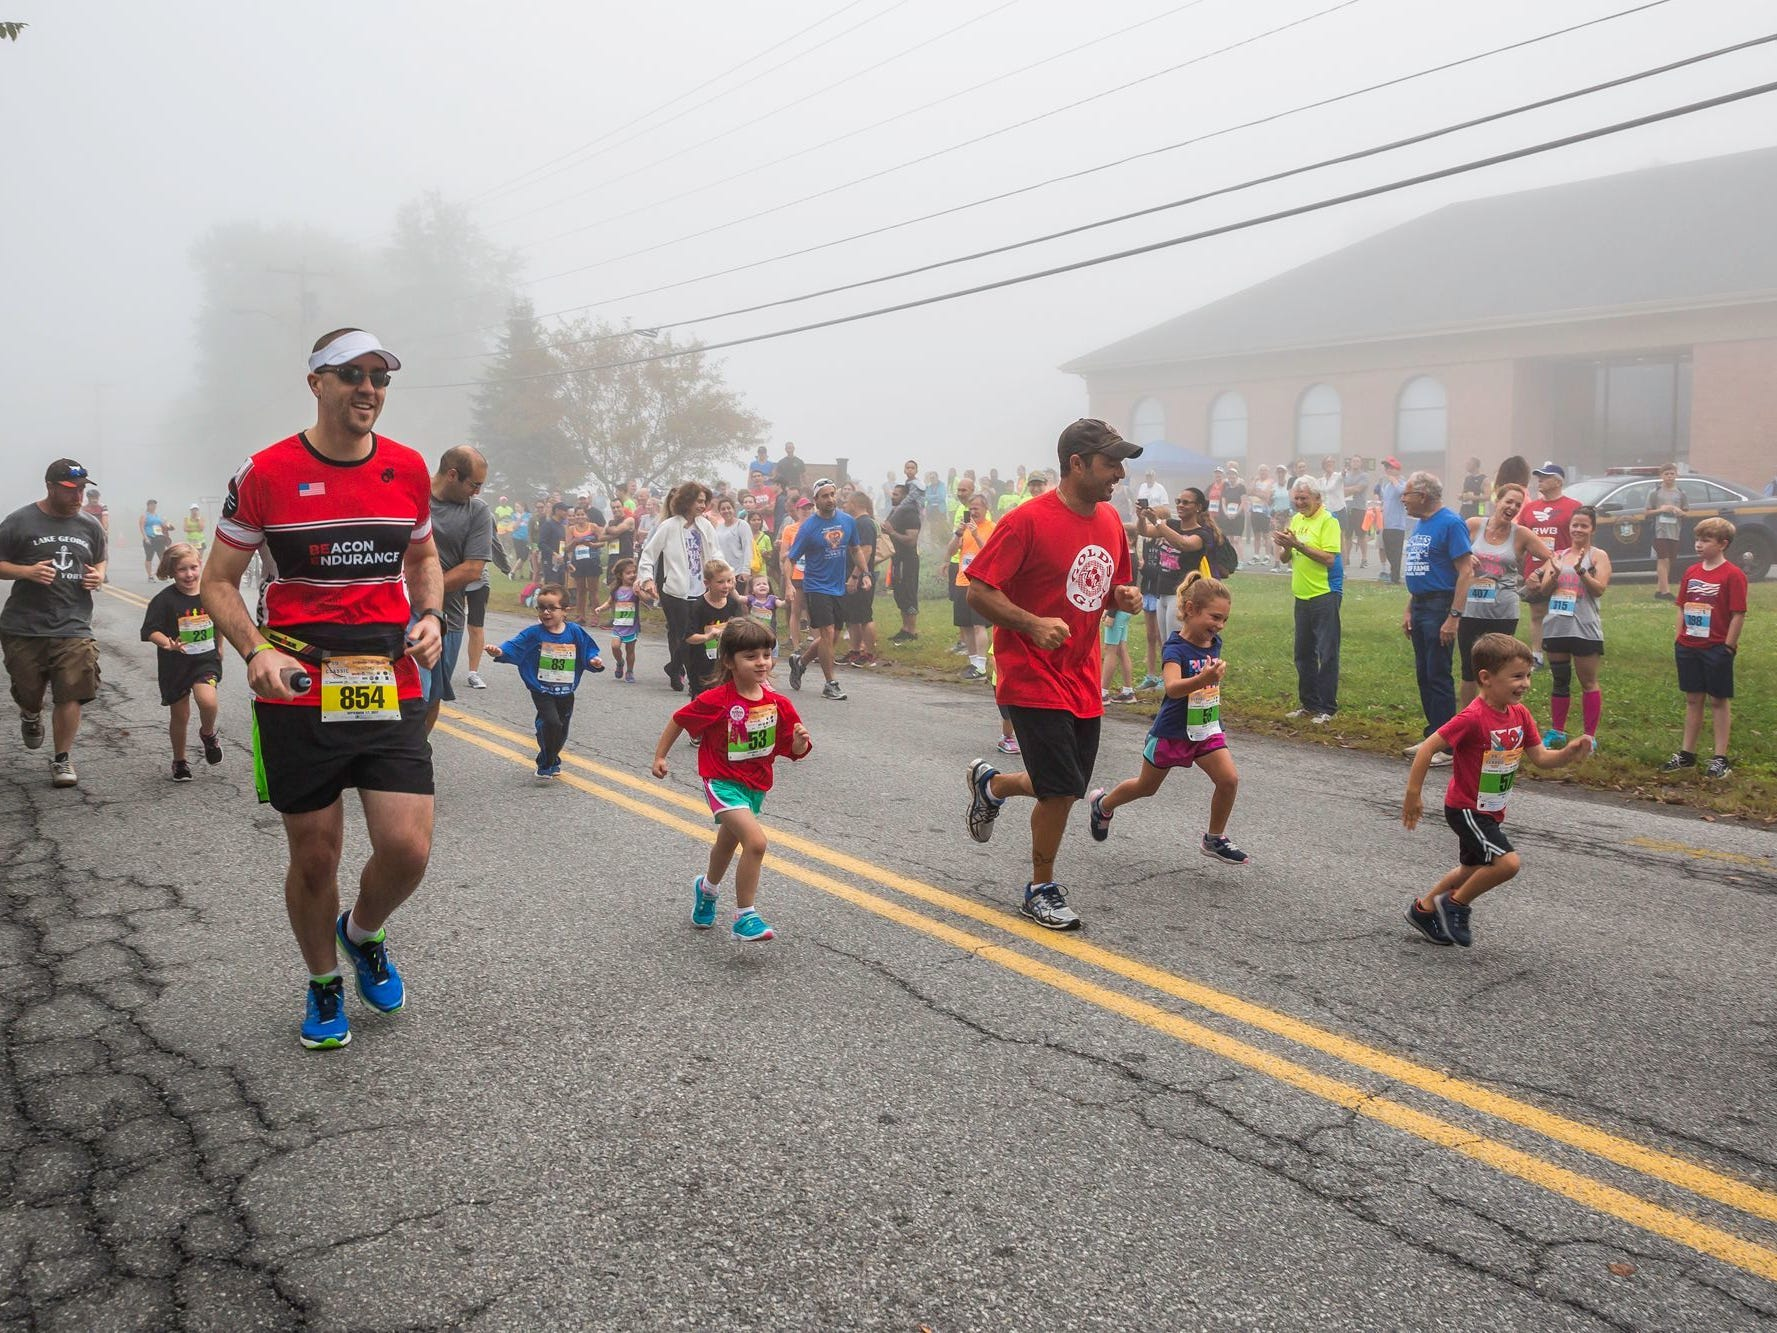 Adults run alongside the youngest of the kids mile runners in LaGrangeville during the Dutchess County Classic in September 2017.